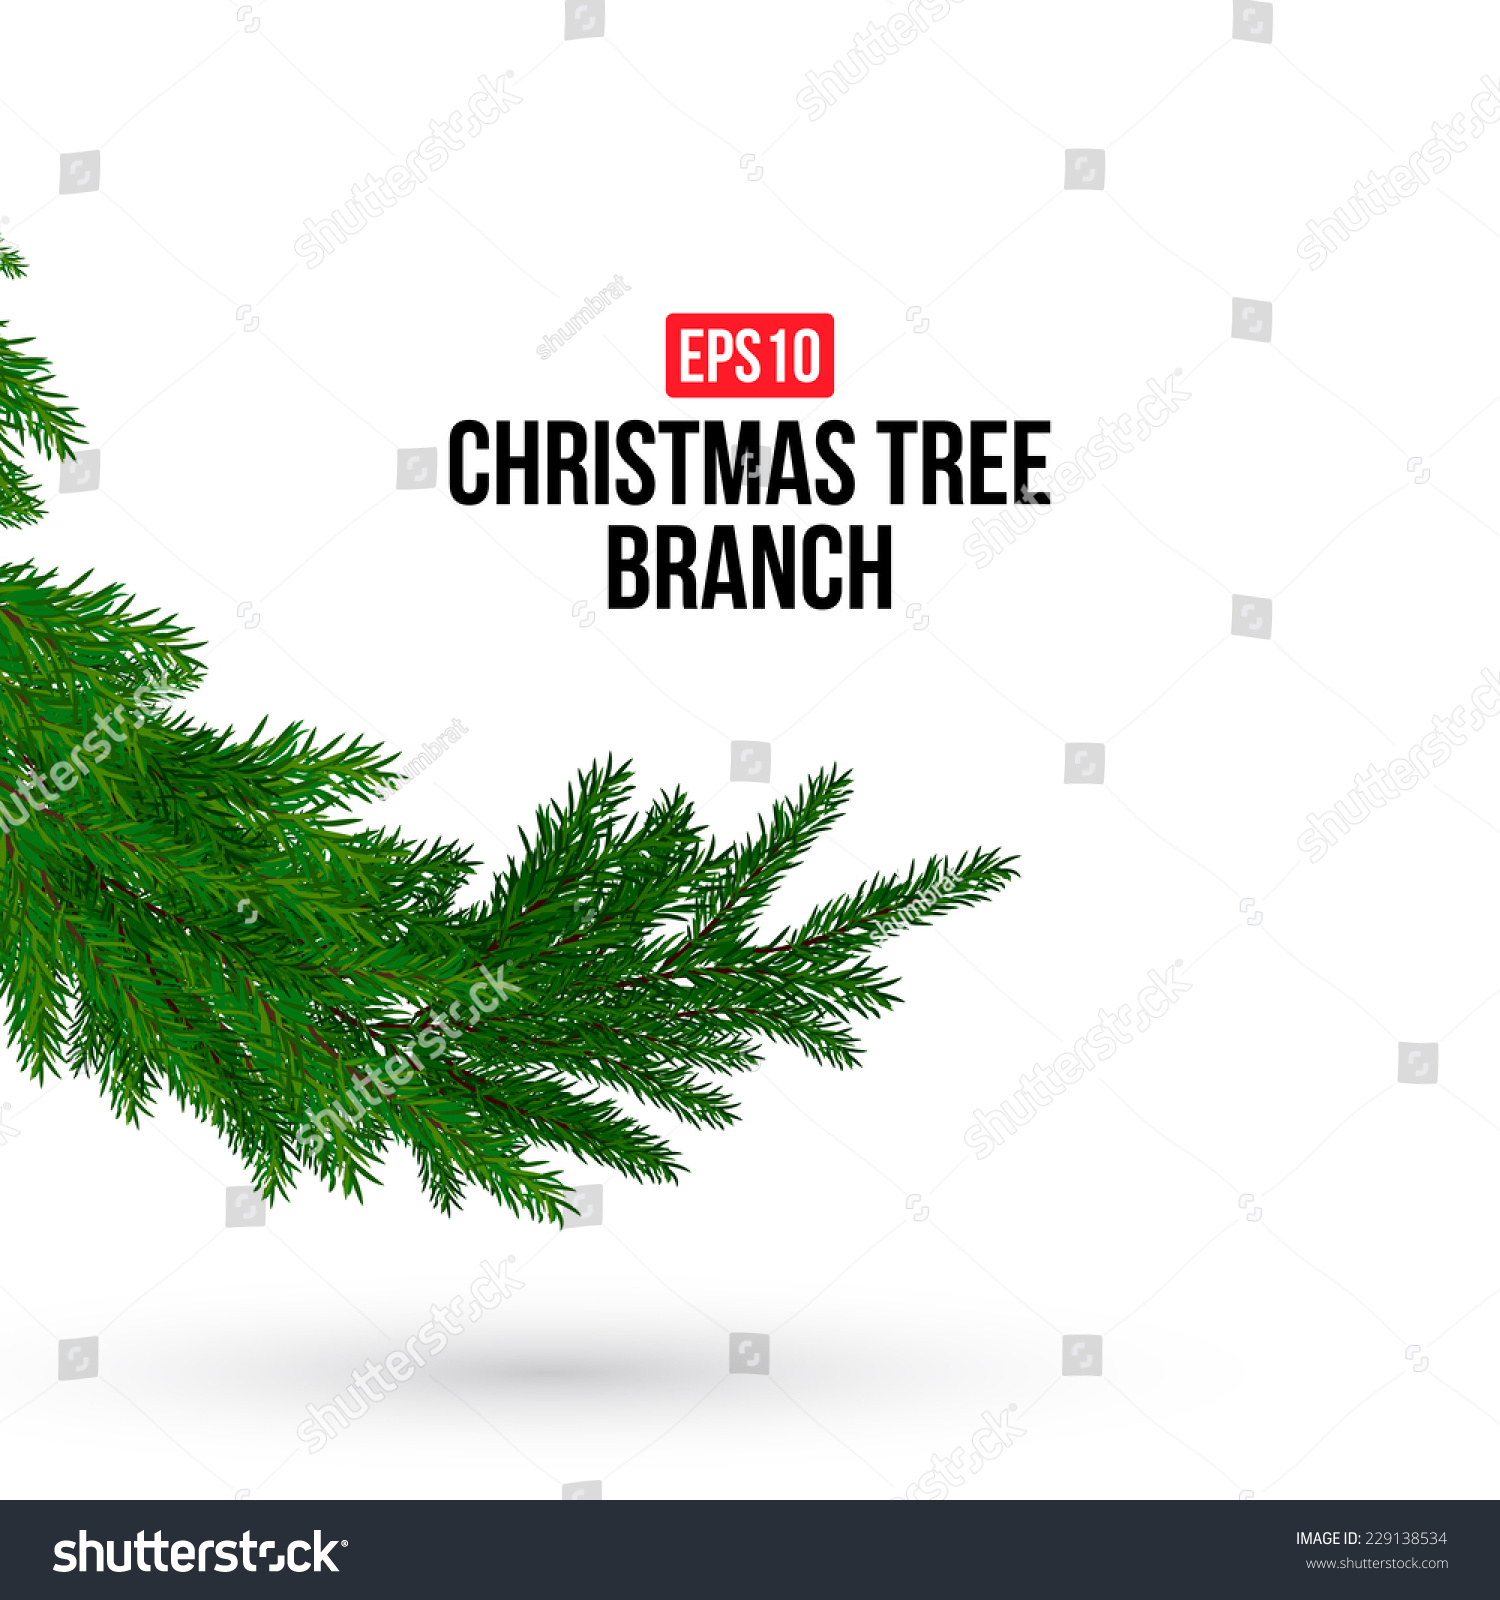 christmas tree branch vector - photo #23